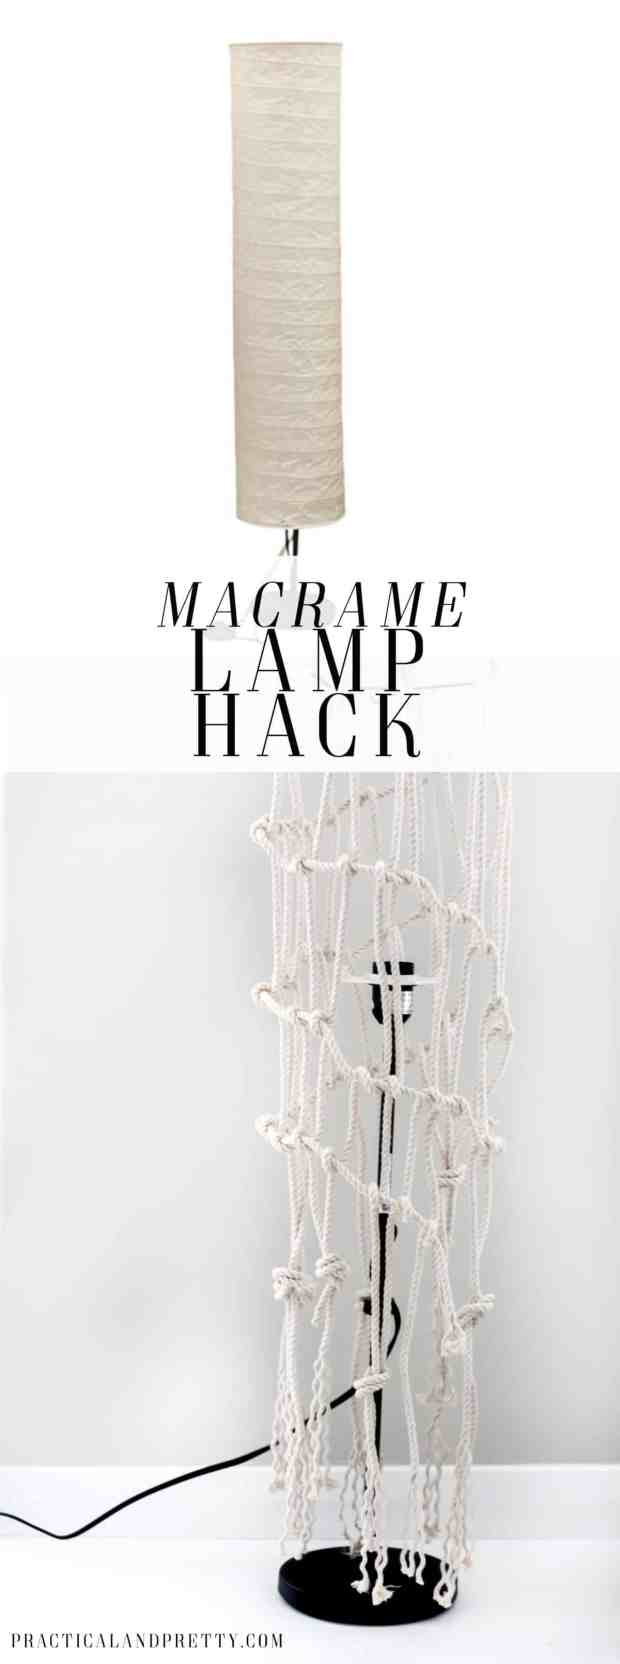 This macrame lamp hack was really pretty simple. The HOLMO lamp can look so boring. Maybe yours needs a little update too!